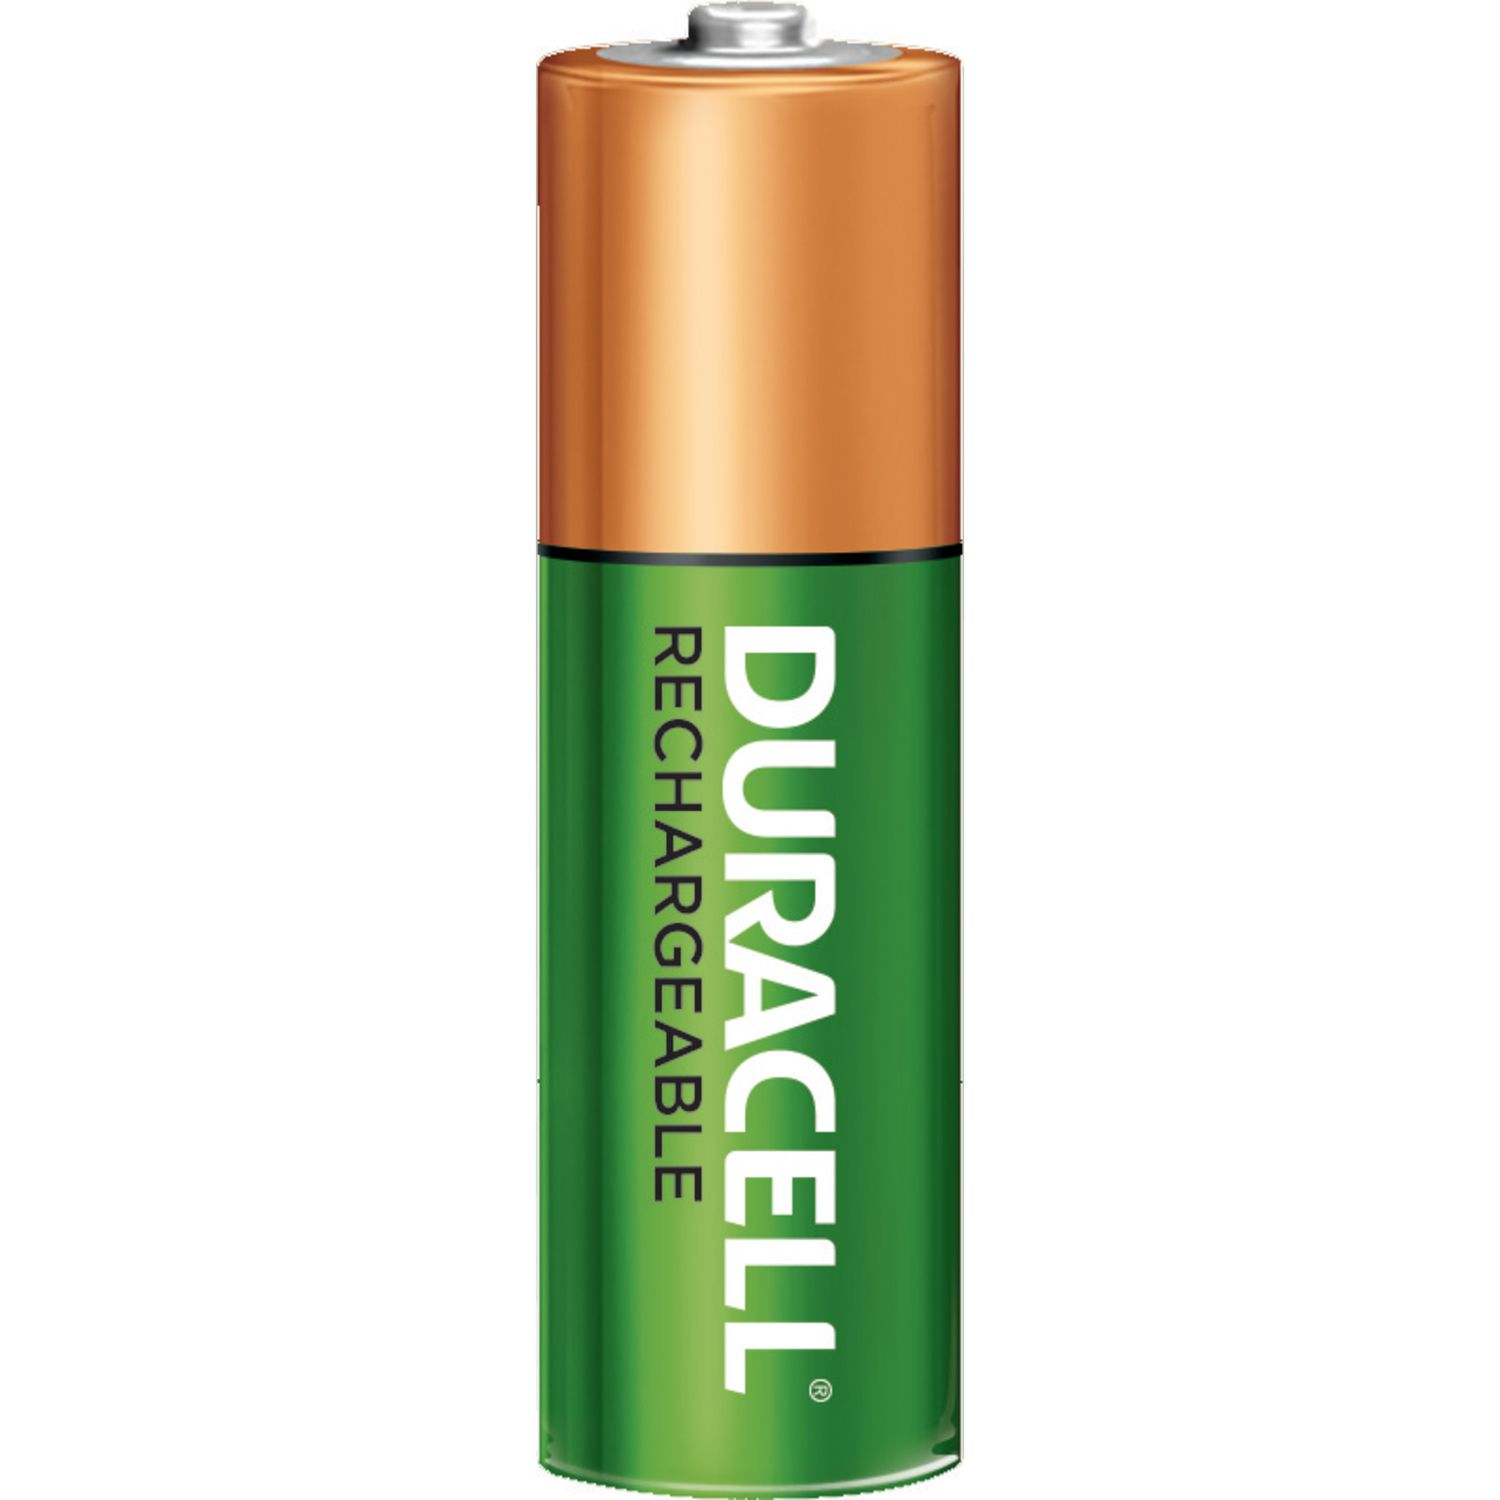 Duracell Rechargeable Nimh Aa 1 4 Volt Rechargeable Battery Dcnlaa4bcd 4 Pk In 2021 Duracell Nimh Battery Nimh Battery Charger